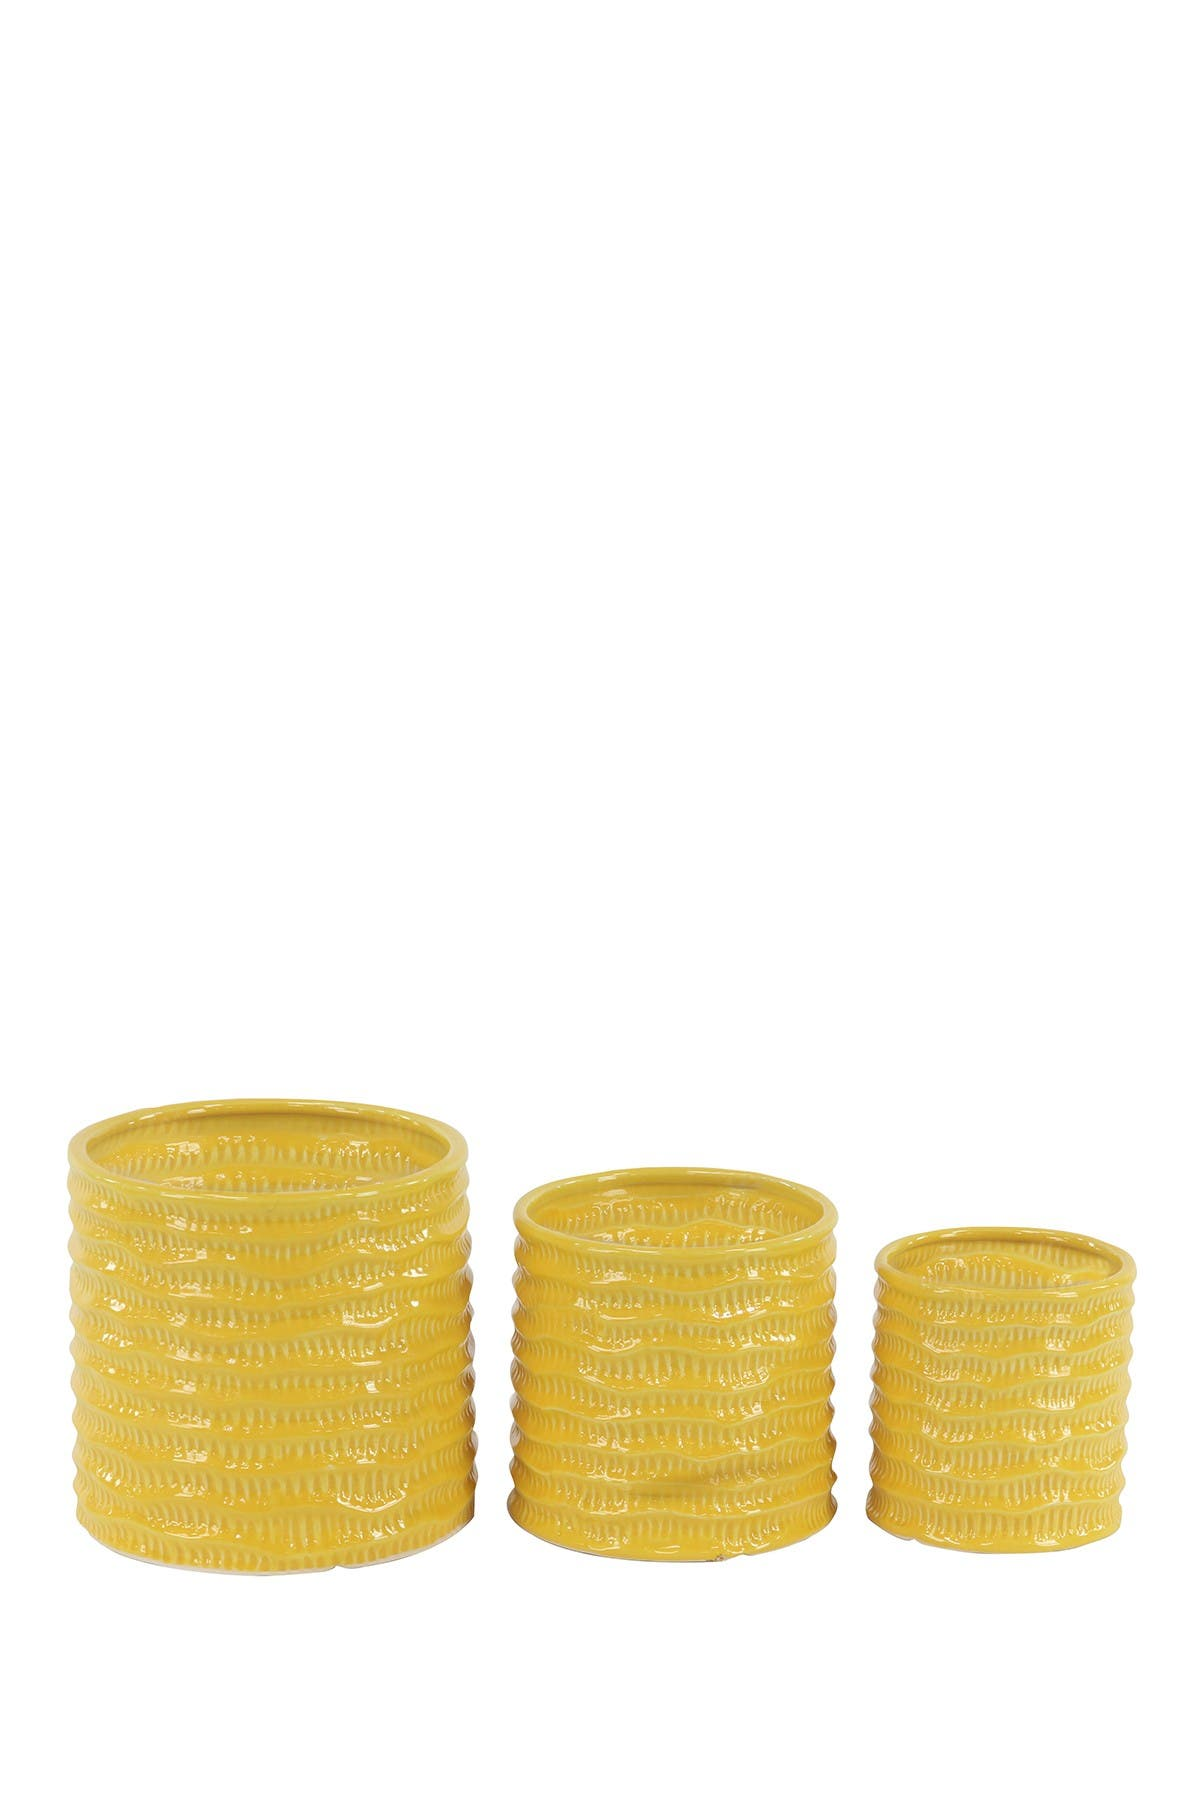 Willow Row Contemporary Cylindrical Yellow Porcelain Planters - Set of 3 at Nordstrom Rack